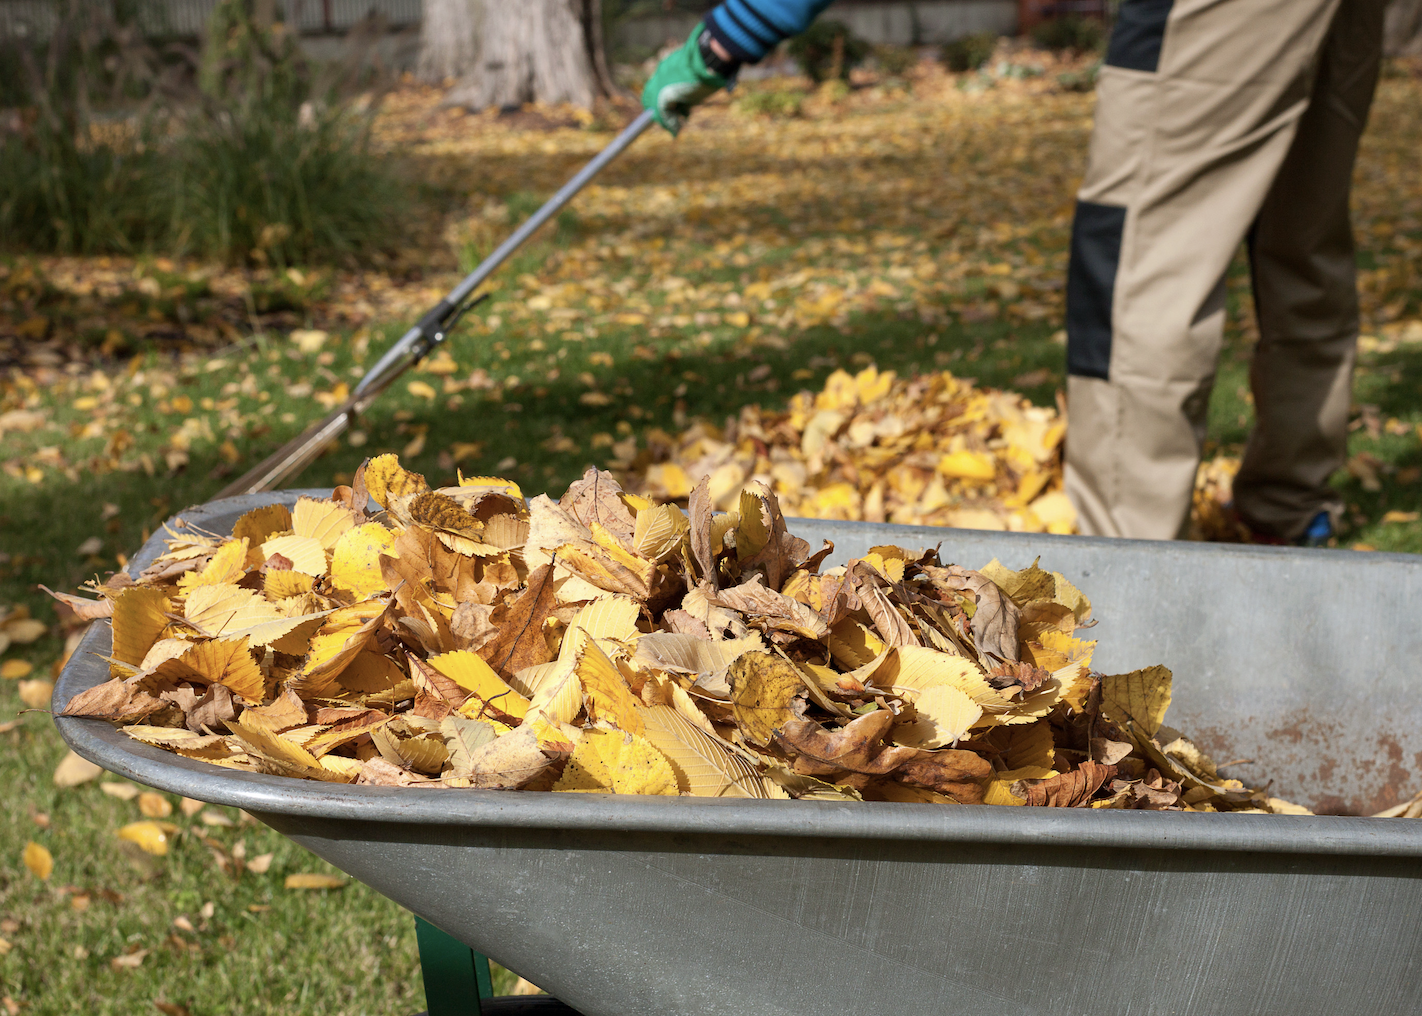 A man raking leaves into a wheelbarrow.